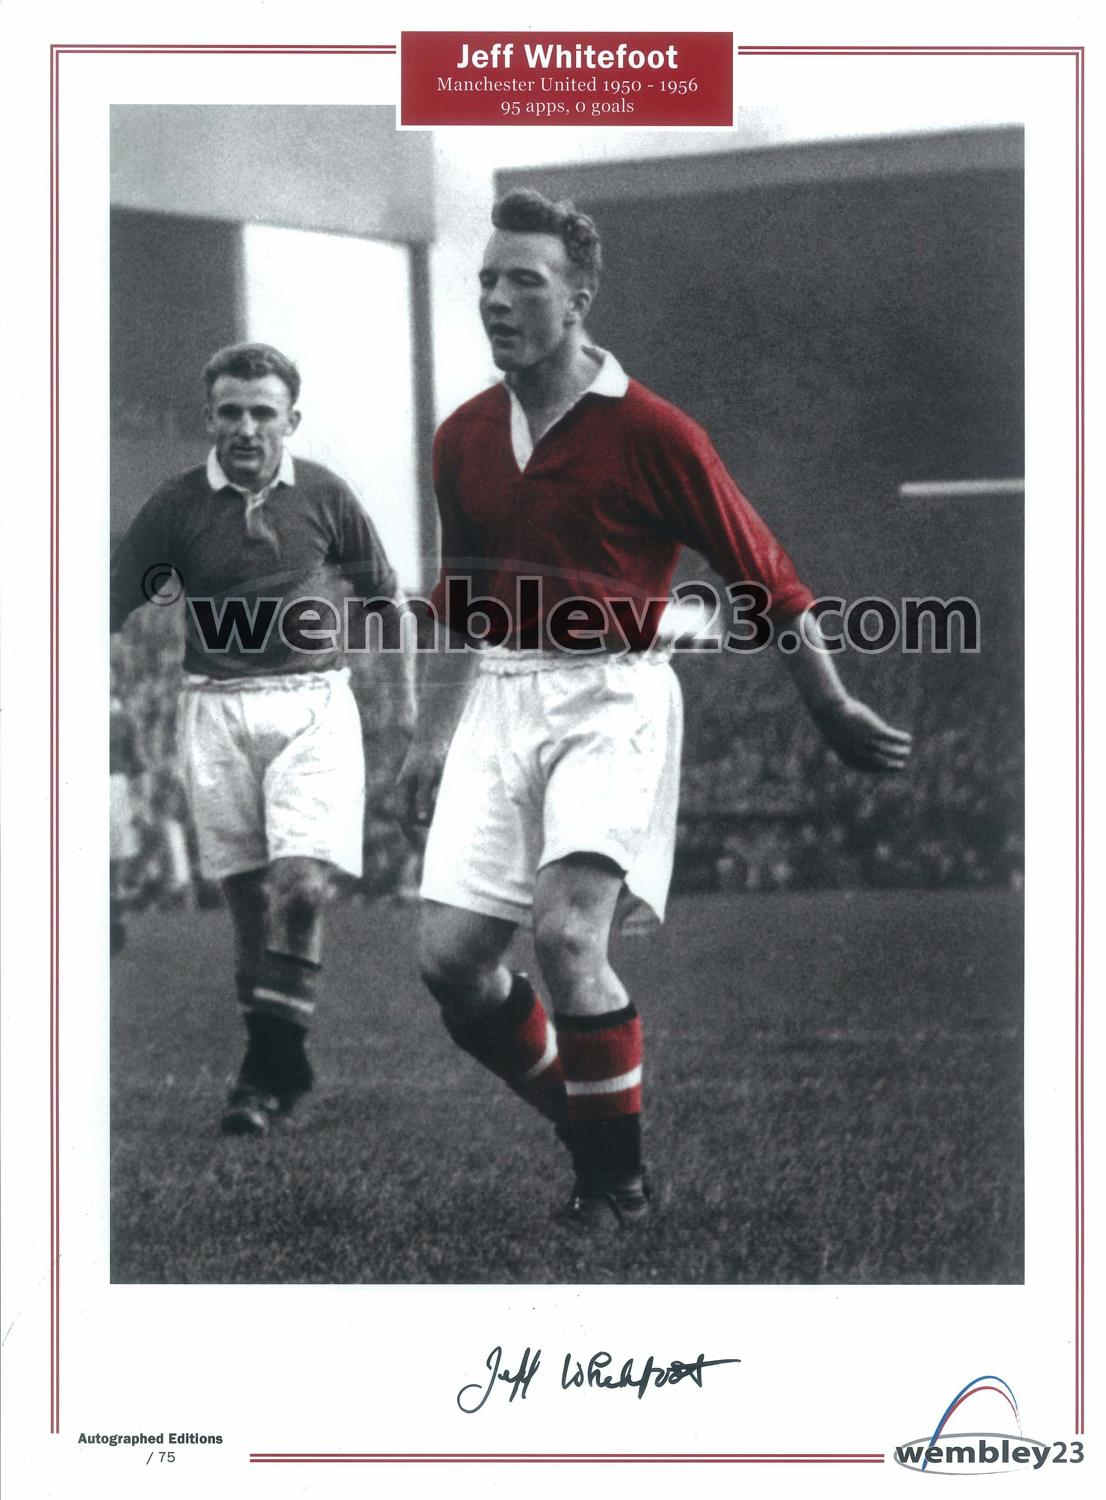 Jeff Whitefoot Manchester United